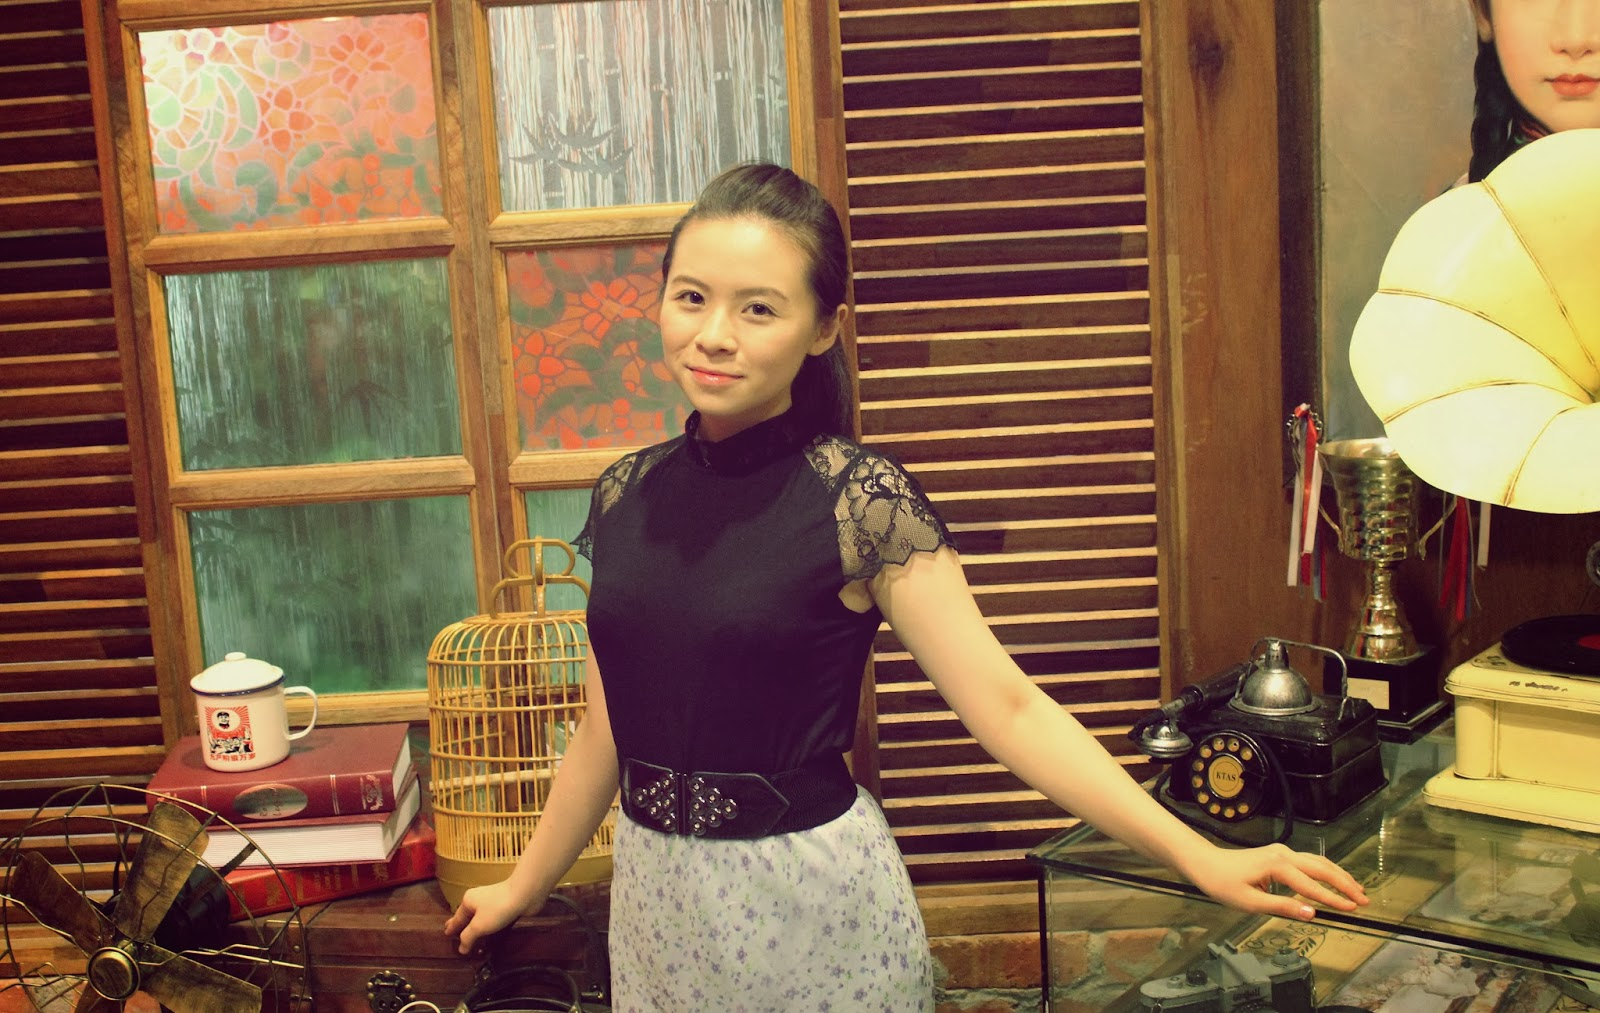 girl and vintage items